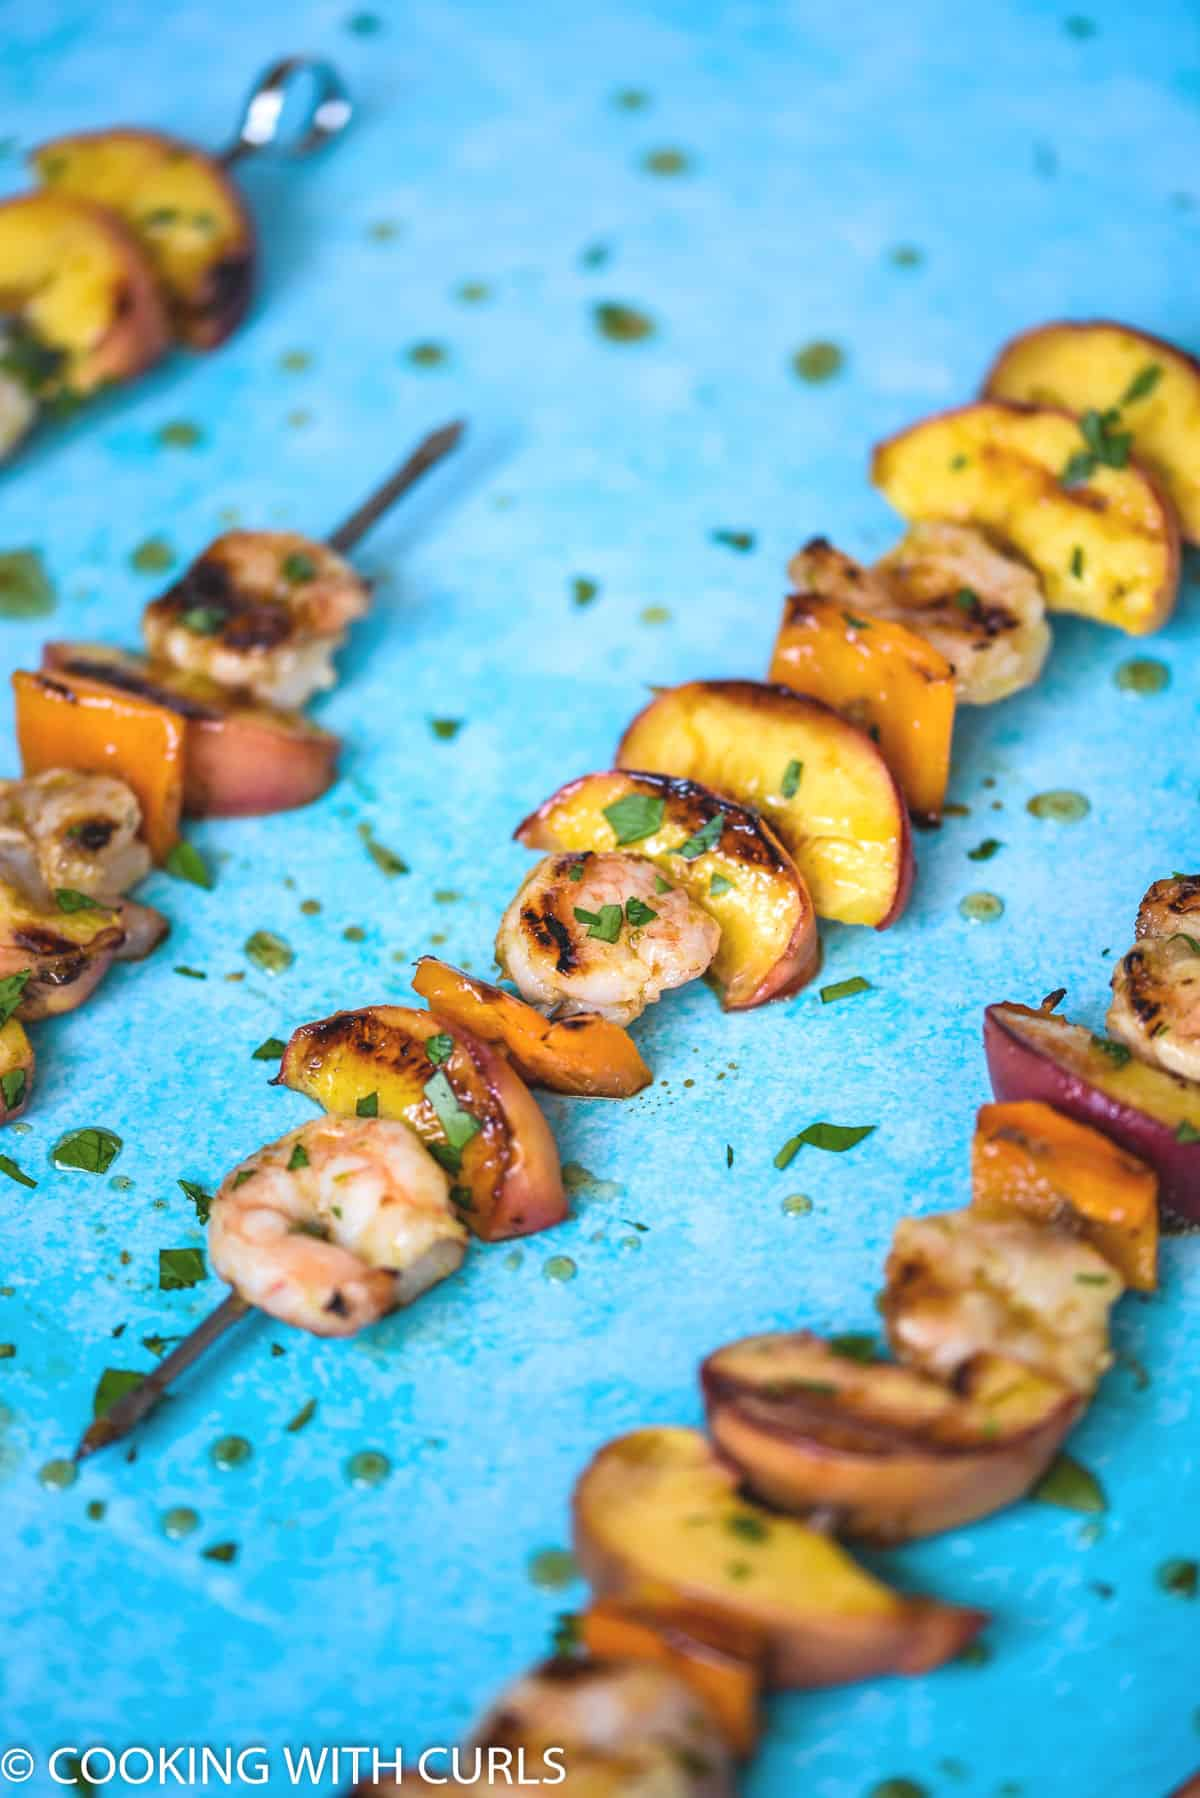 close up image of a metal skewer filled with grilled shrimp, peach wedges, and orange bell pepper squares with three more skewers in the background.